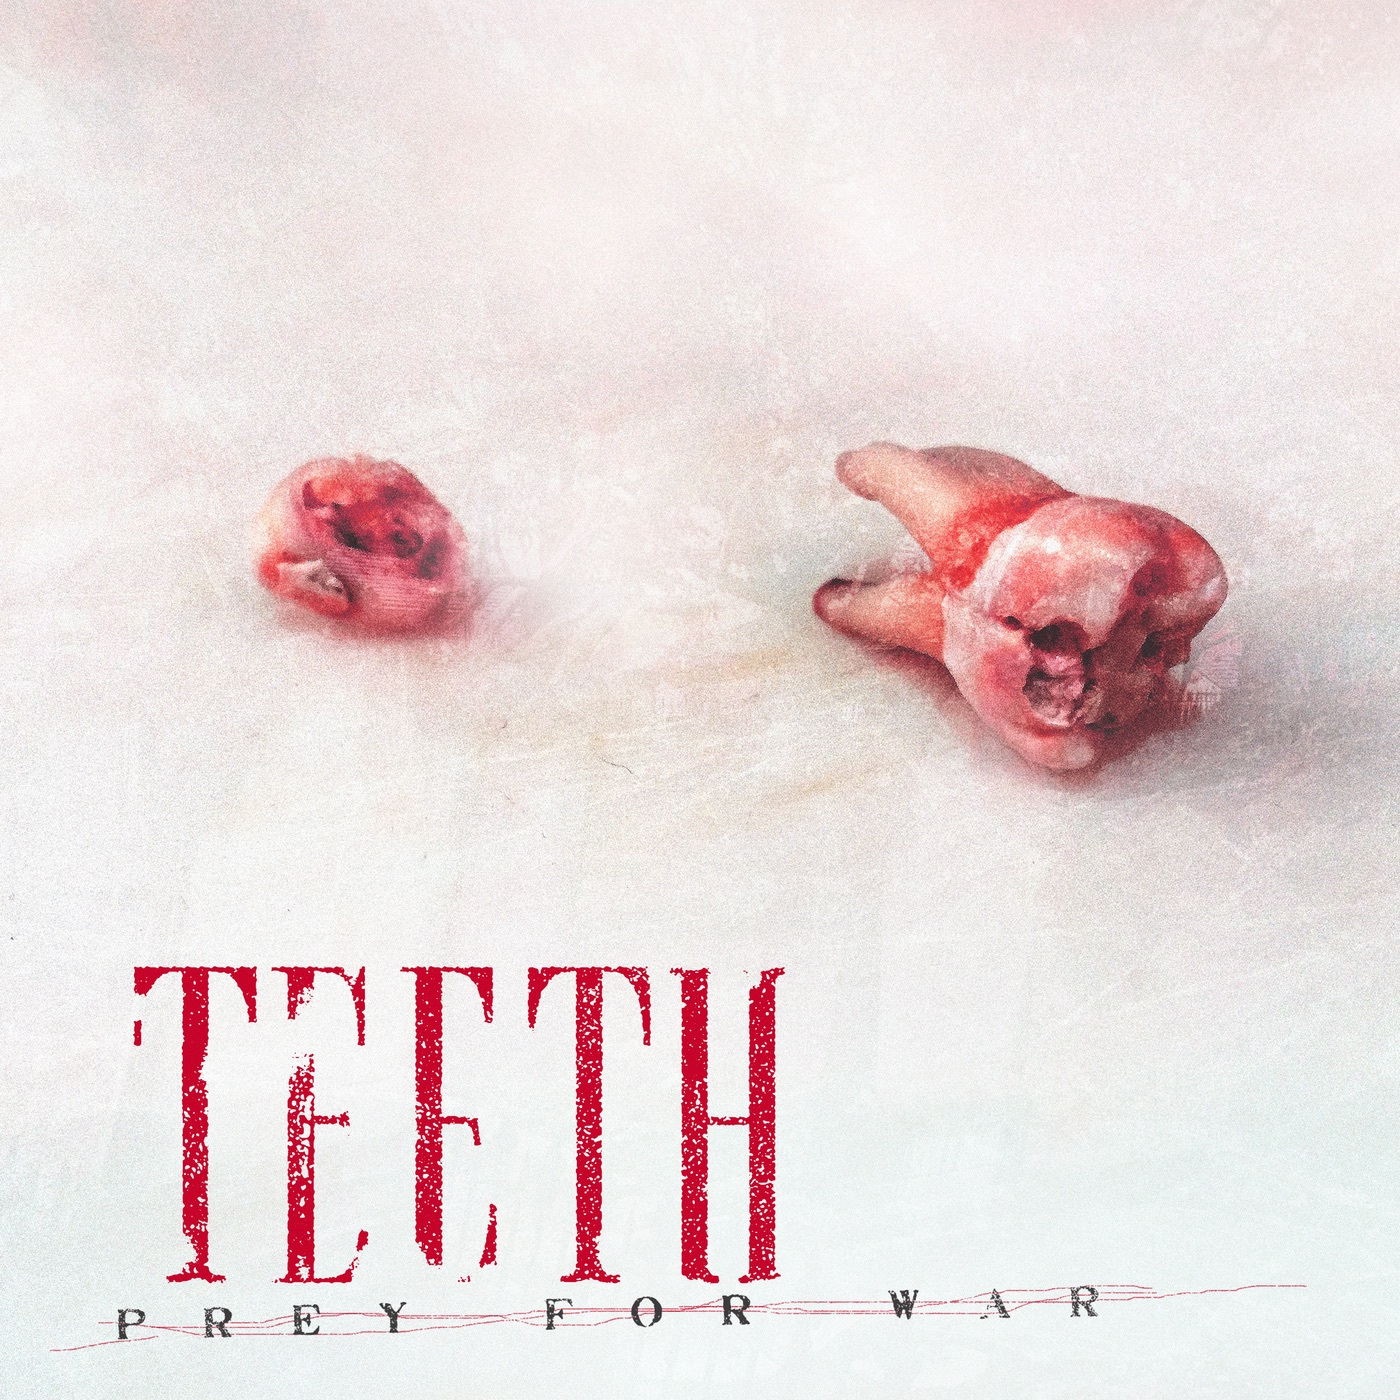 Teeth - Prey For War (2019)